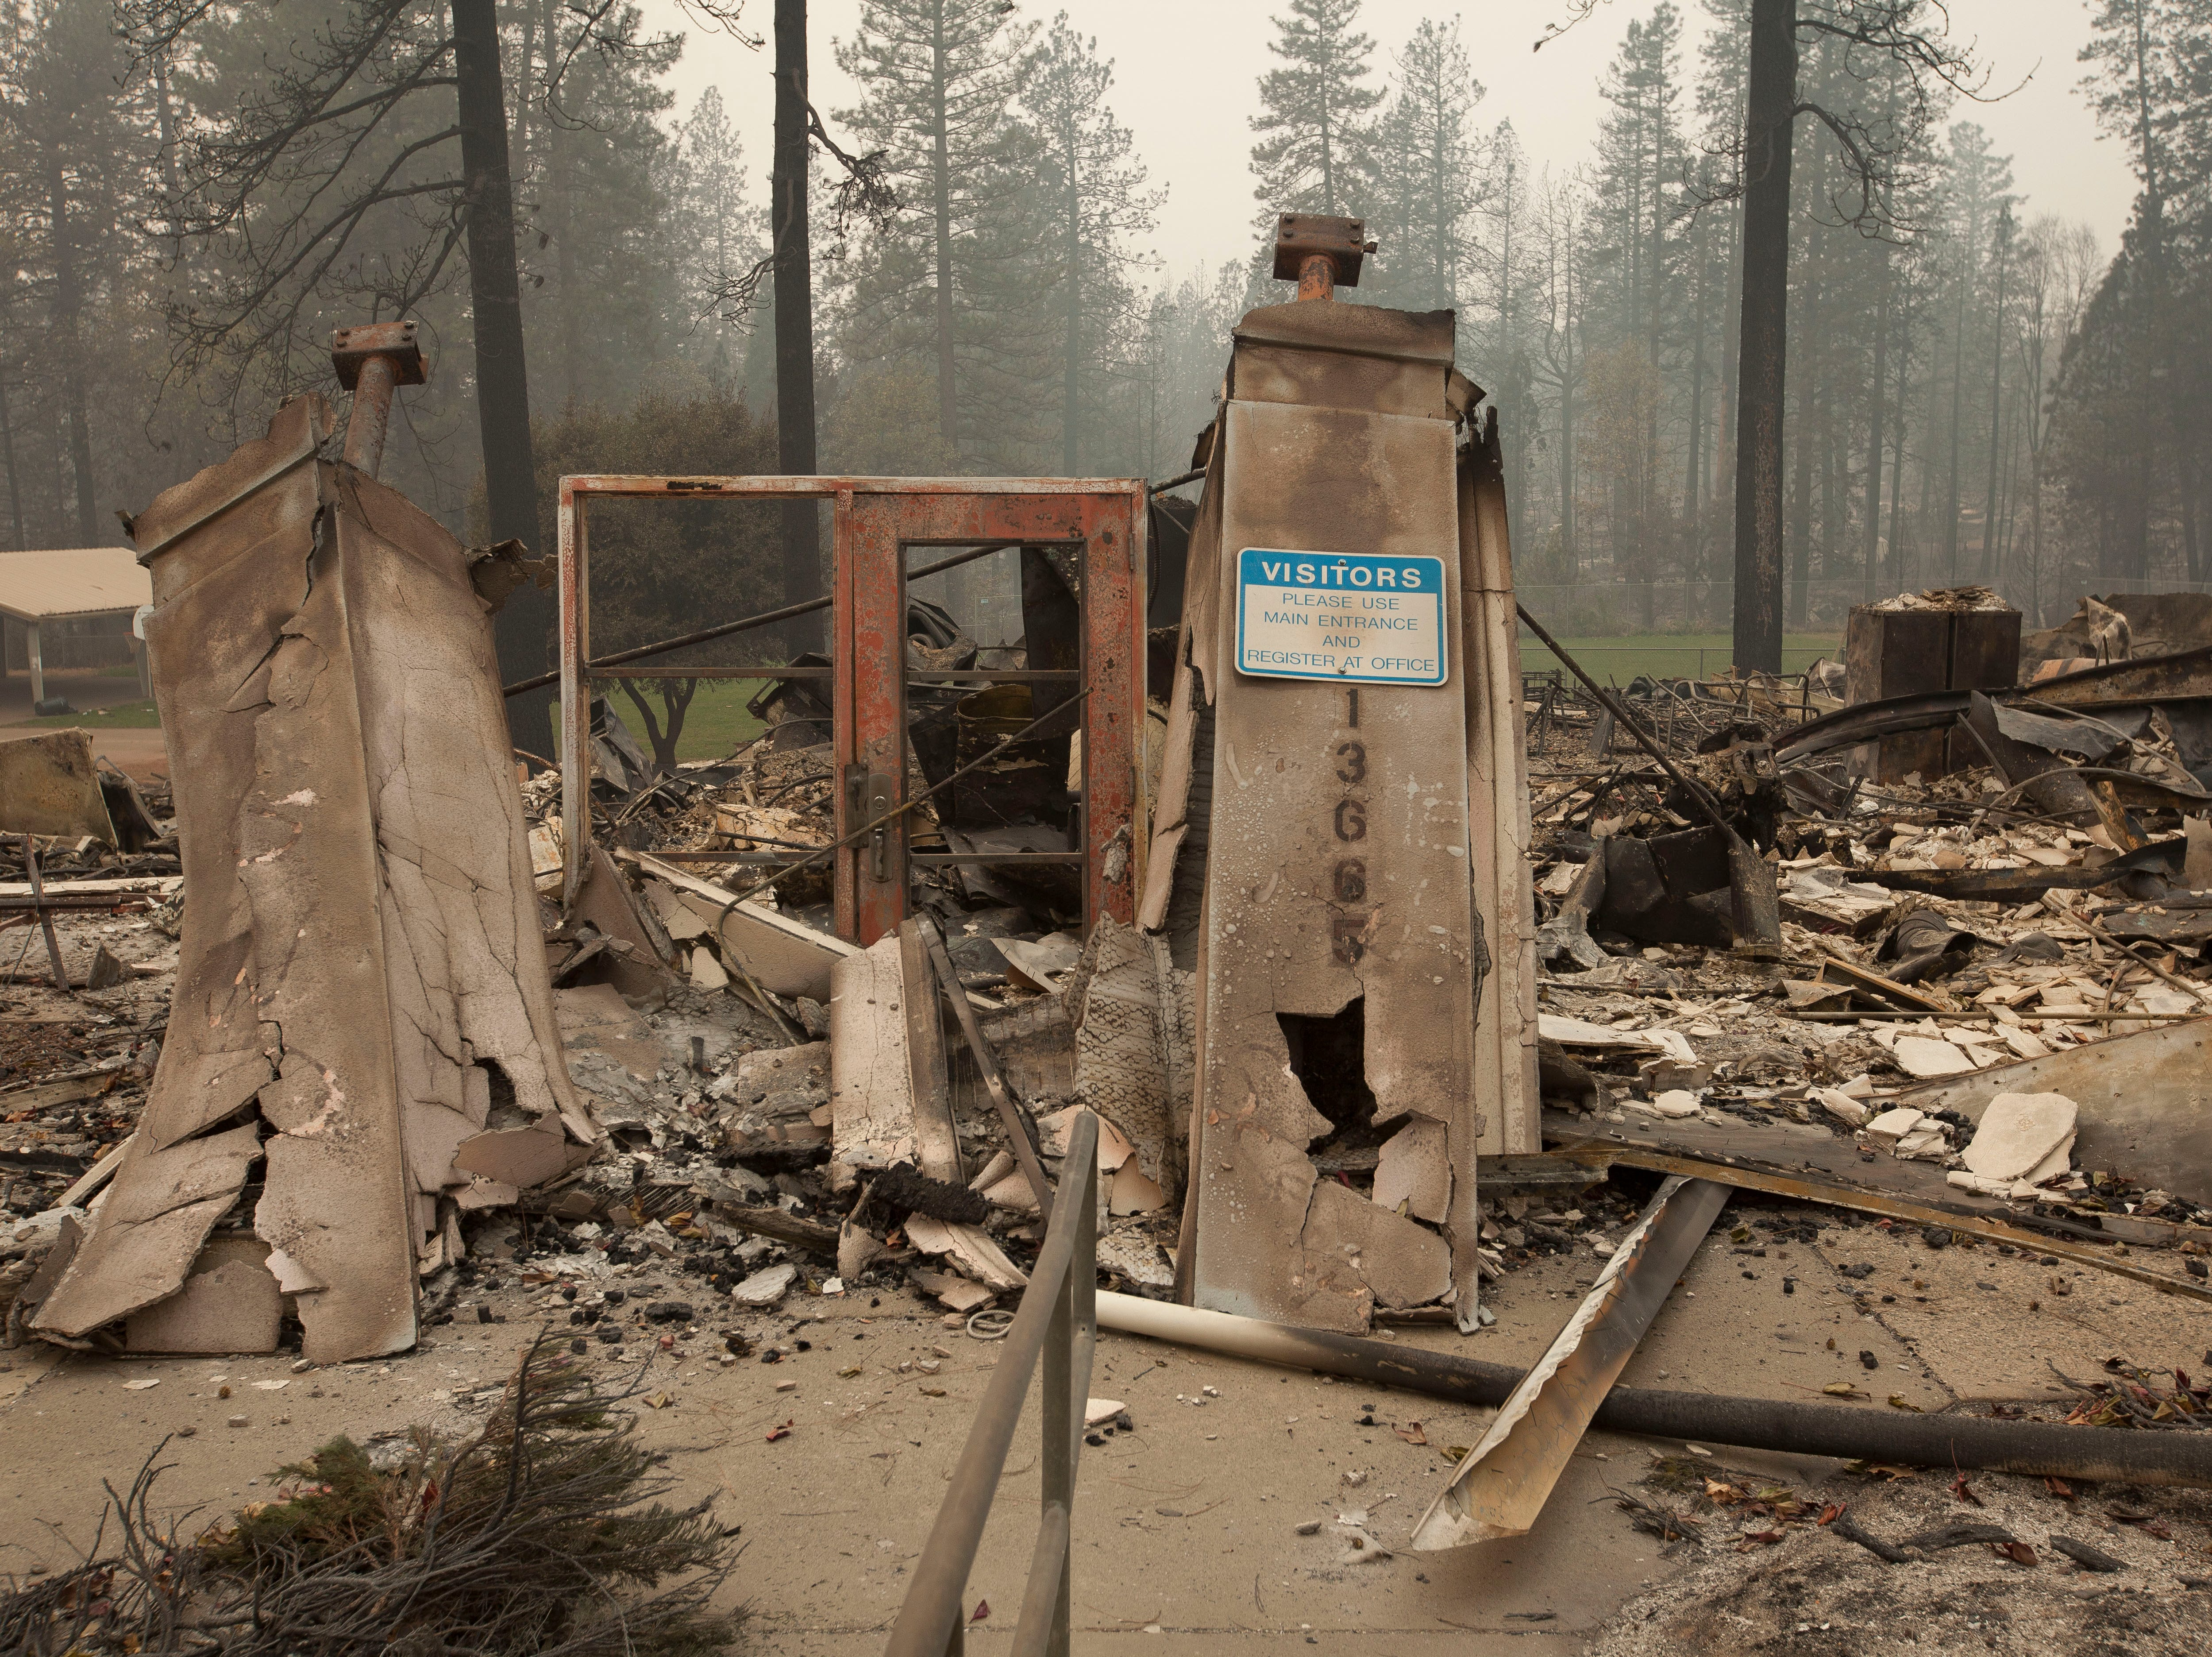 Very little remains of the continuation high school in Paradise, CA, after the Camp Fire devastated the area.